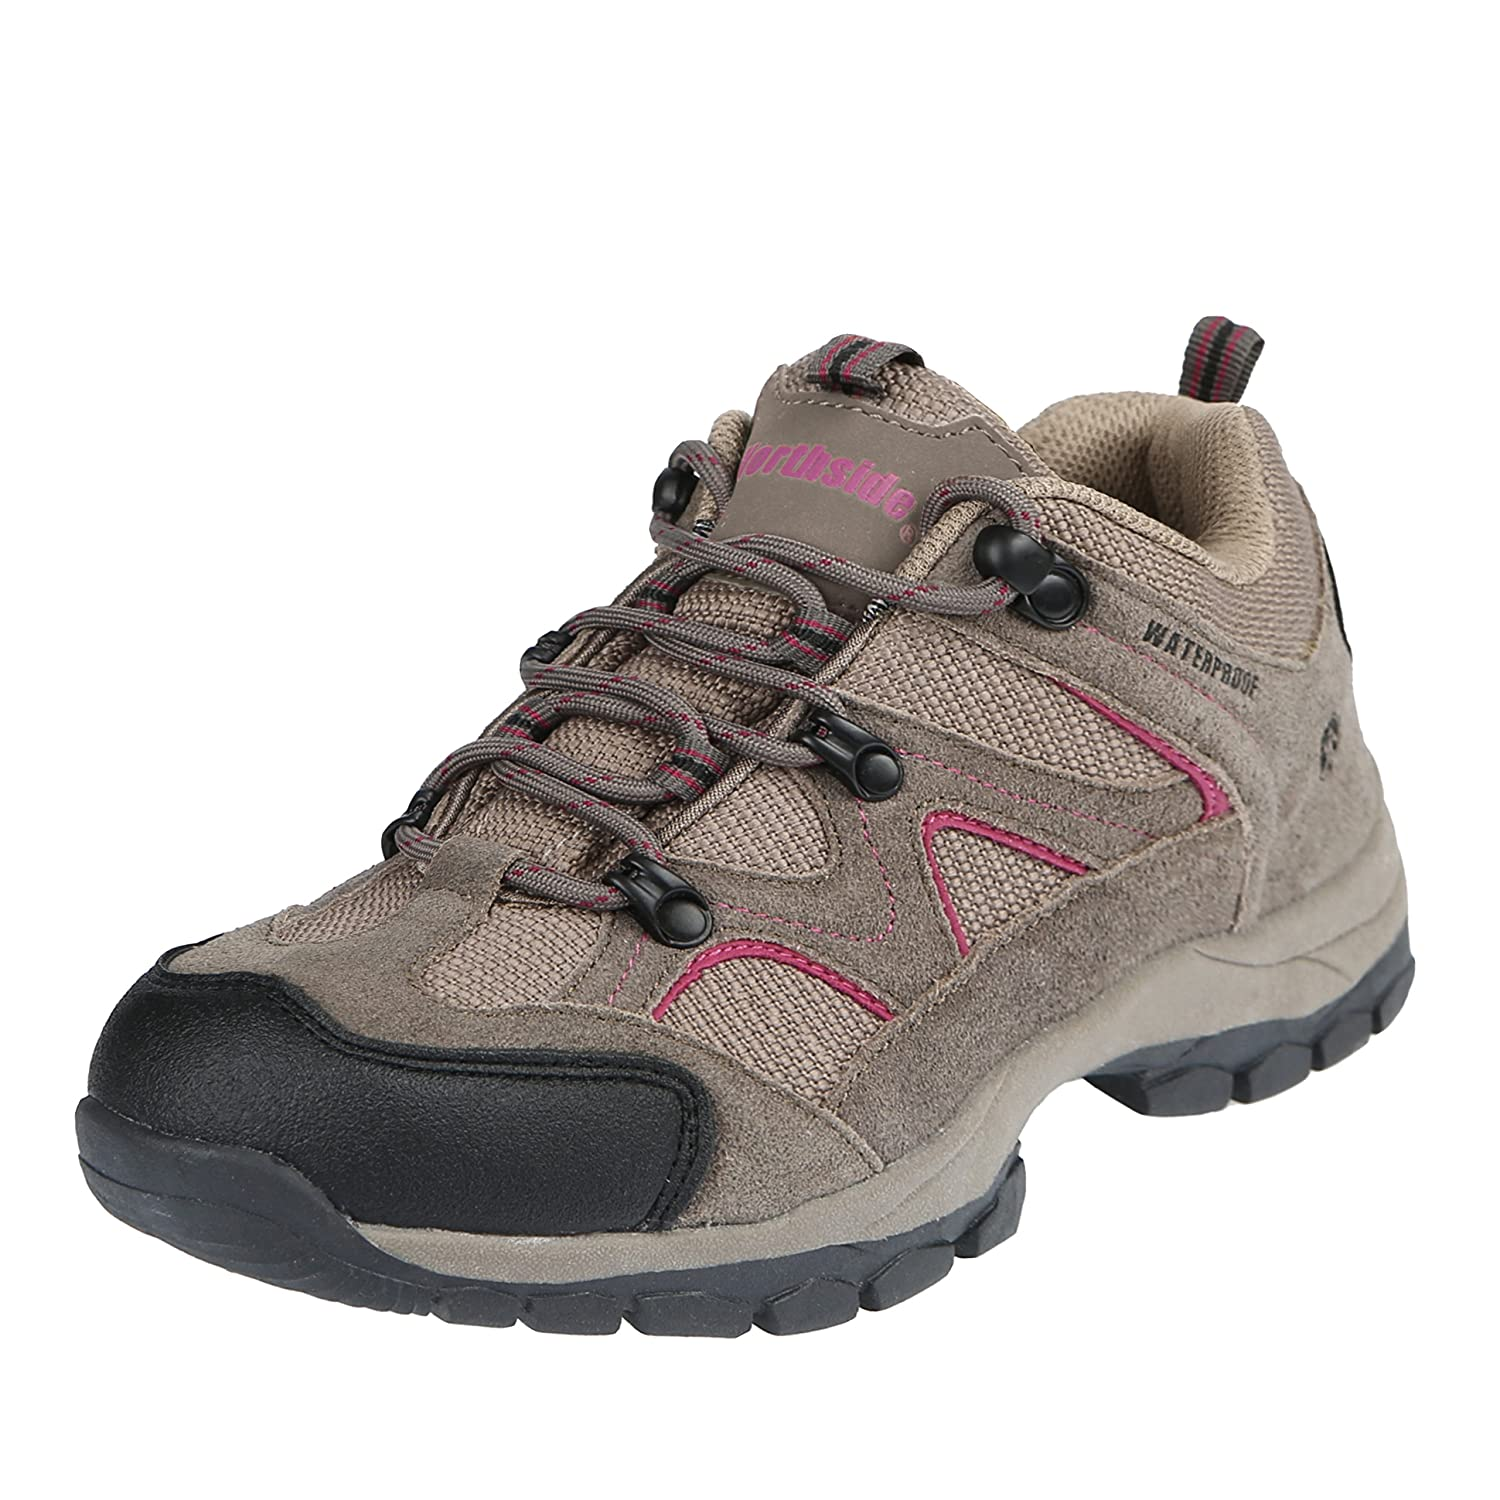 Northside Women's Snohomish Low Waterproof Hiking Shoe B00MGQW1NK 8.5 B(M) US|Stone/Berry